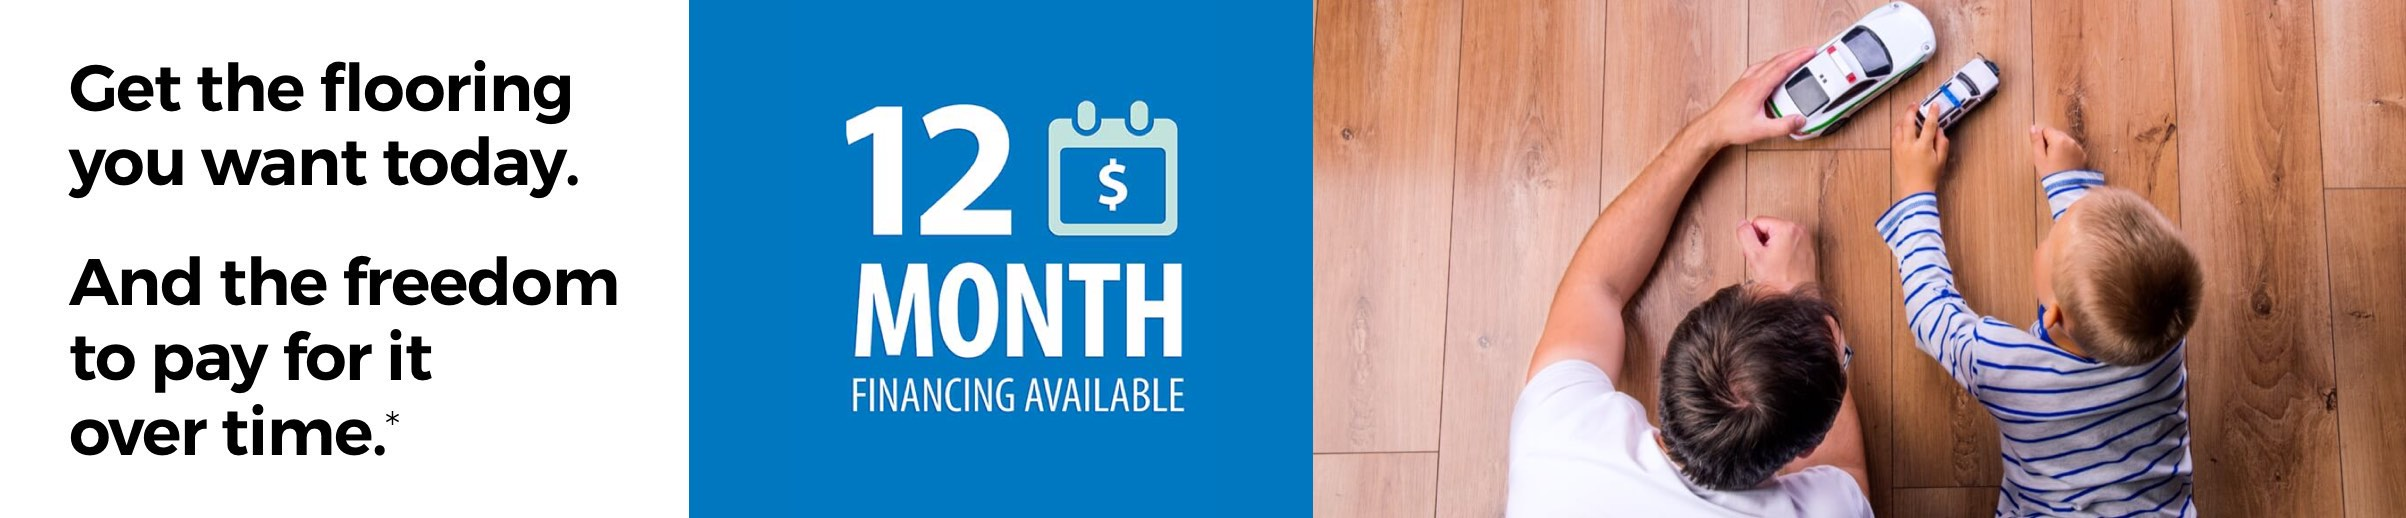 financing banner | Great Floors